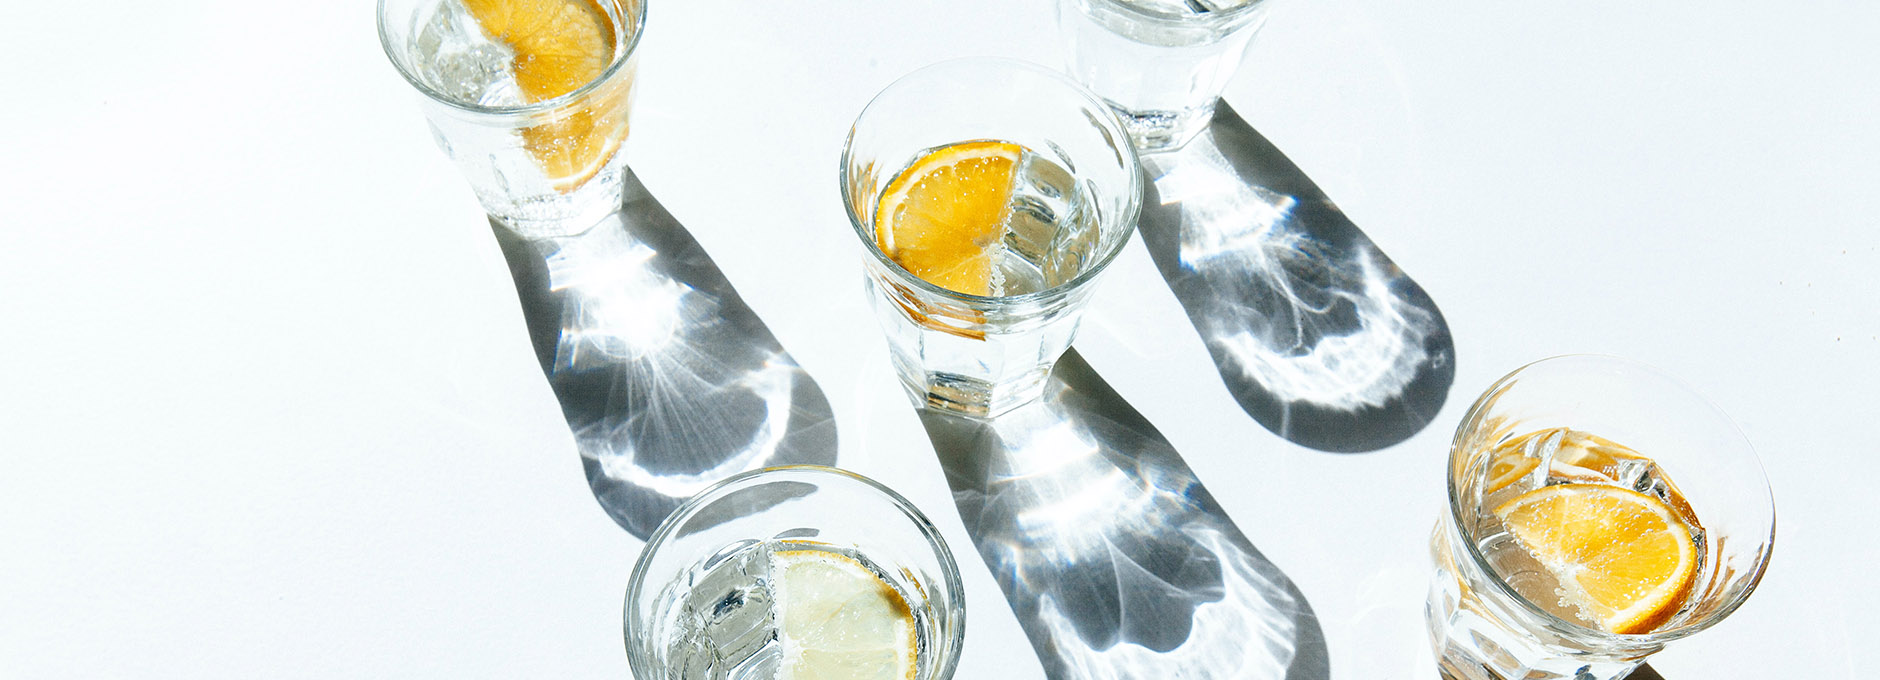 Water in glasses with lemon slices